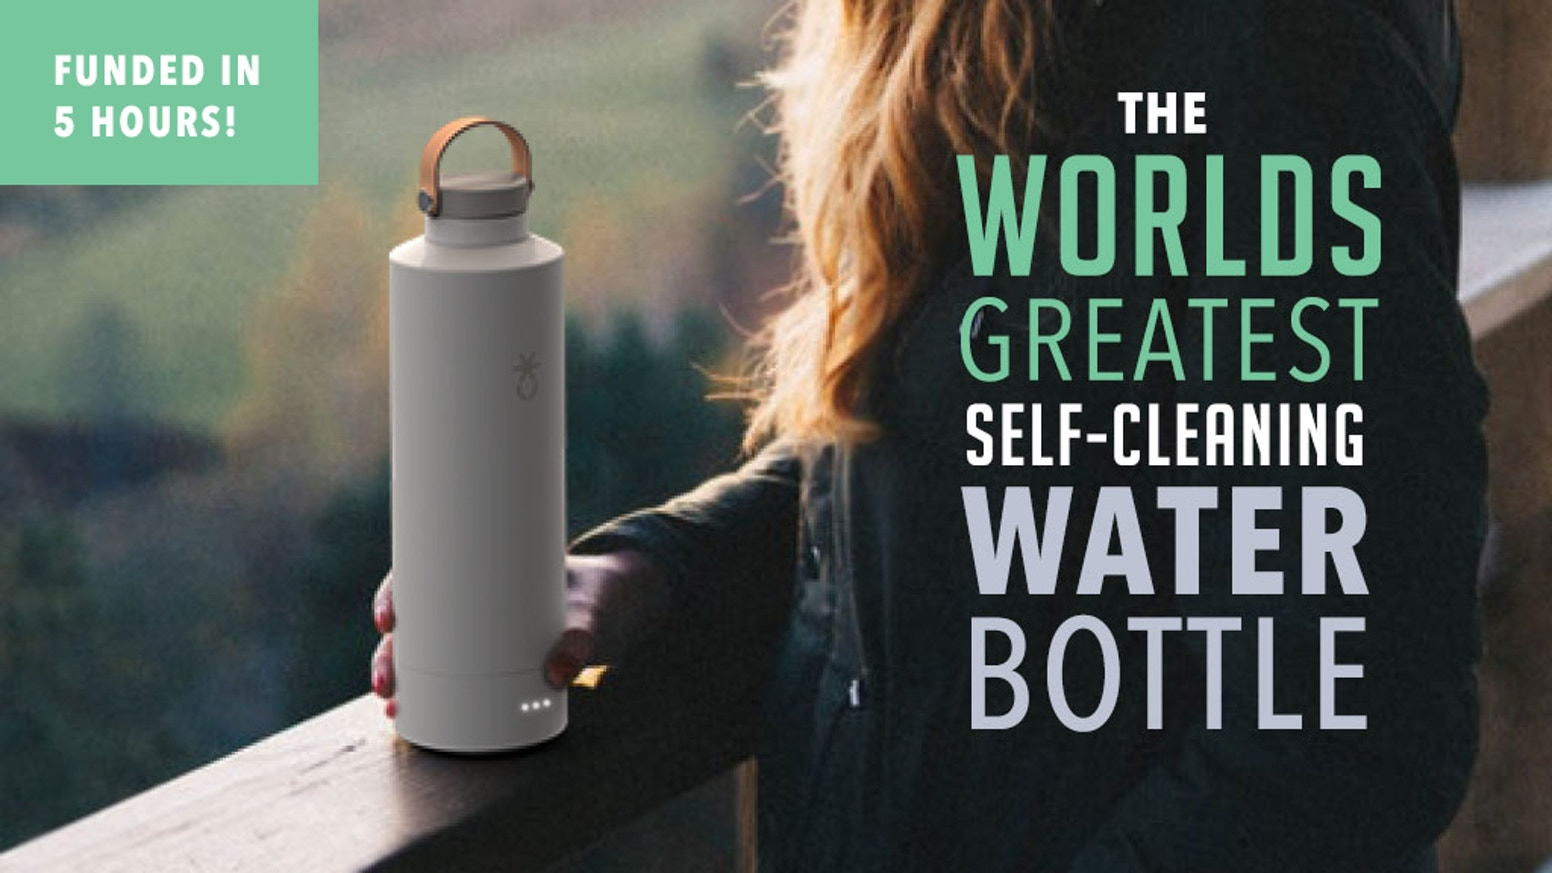 A reusable water bottle that harnesses the power of digital UV-C light to kill 99.999% of bacteria in your water and bottle.